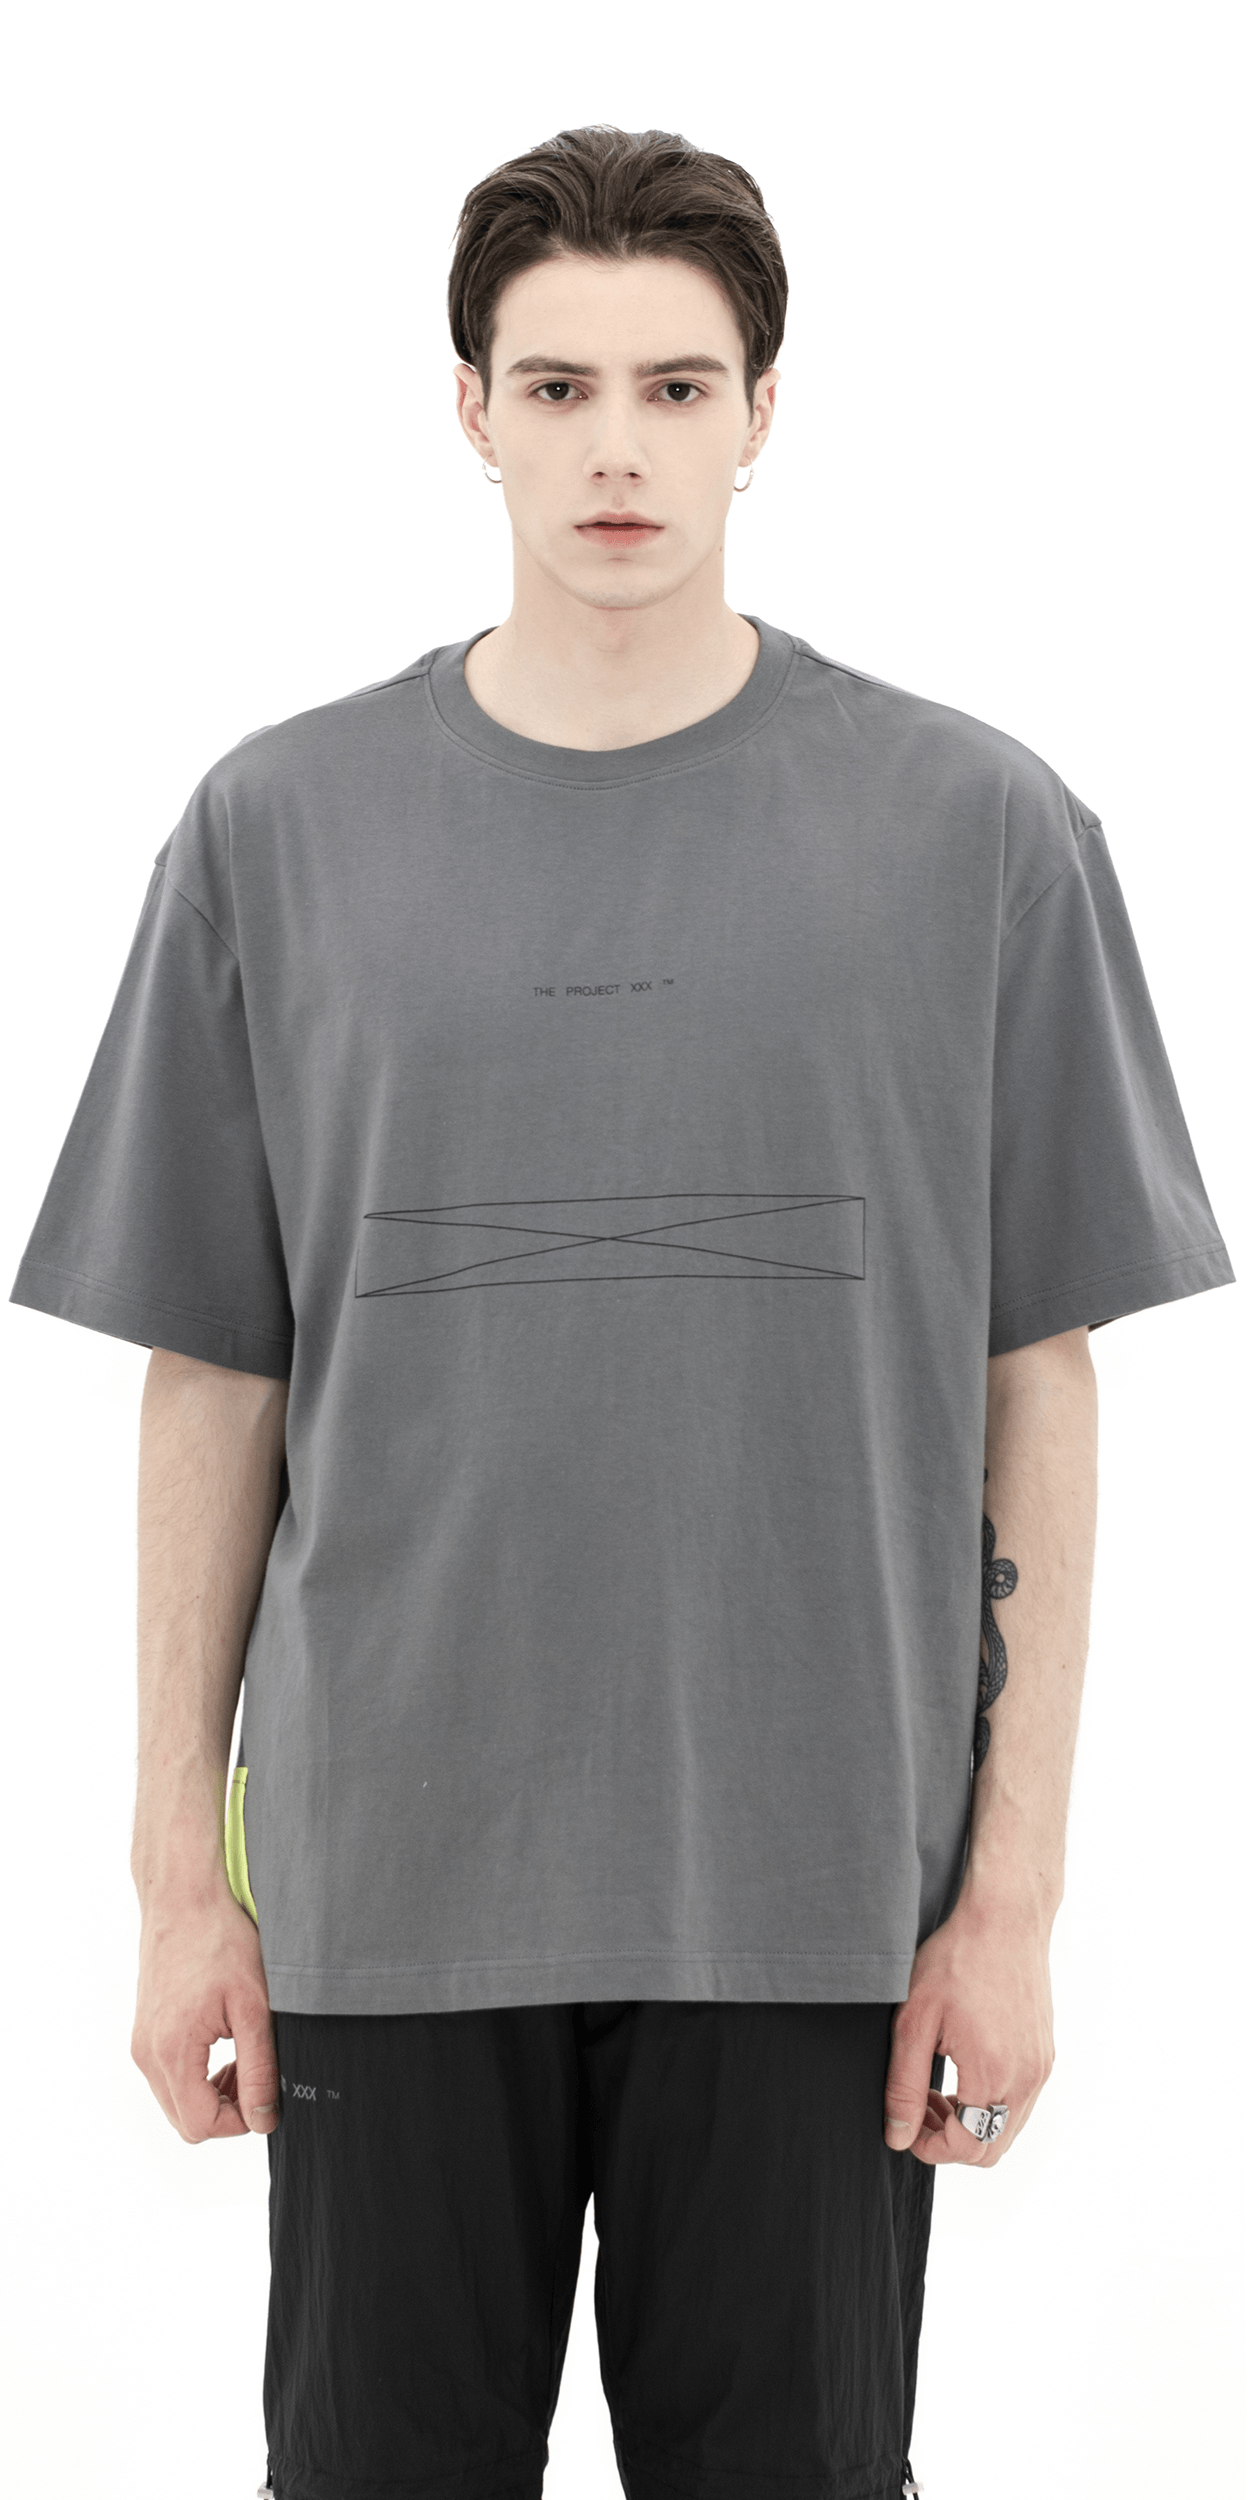 WIREFRAME 1/2 tee gray